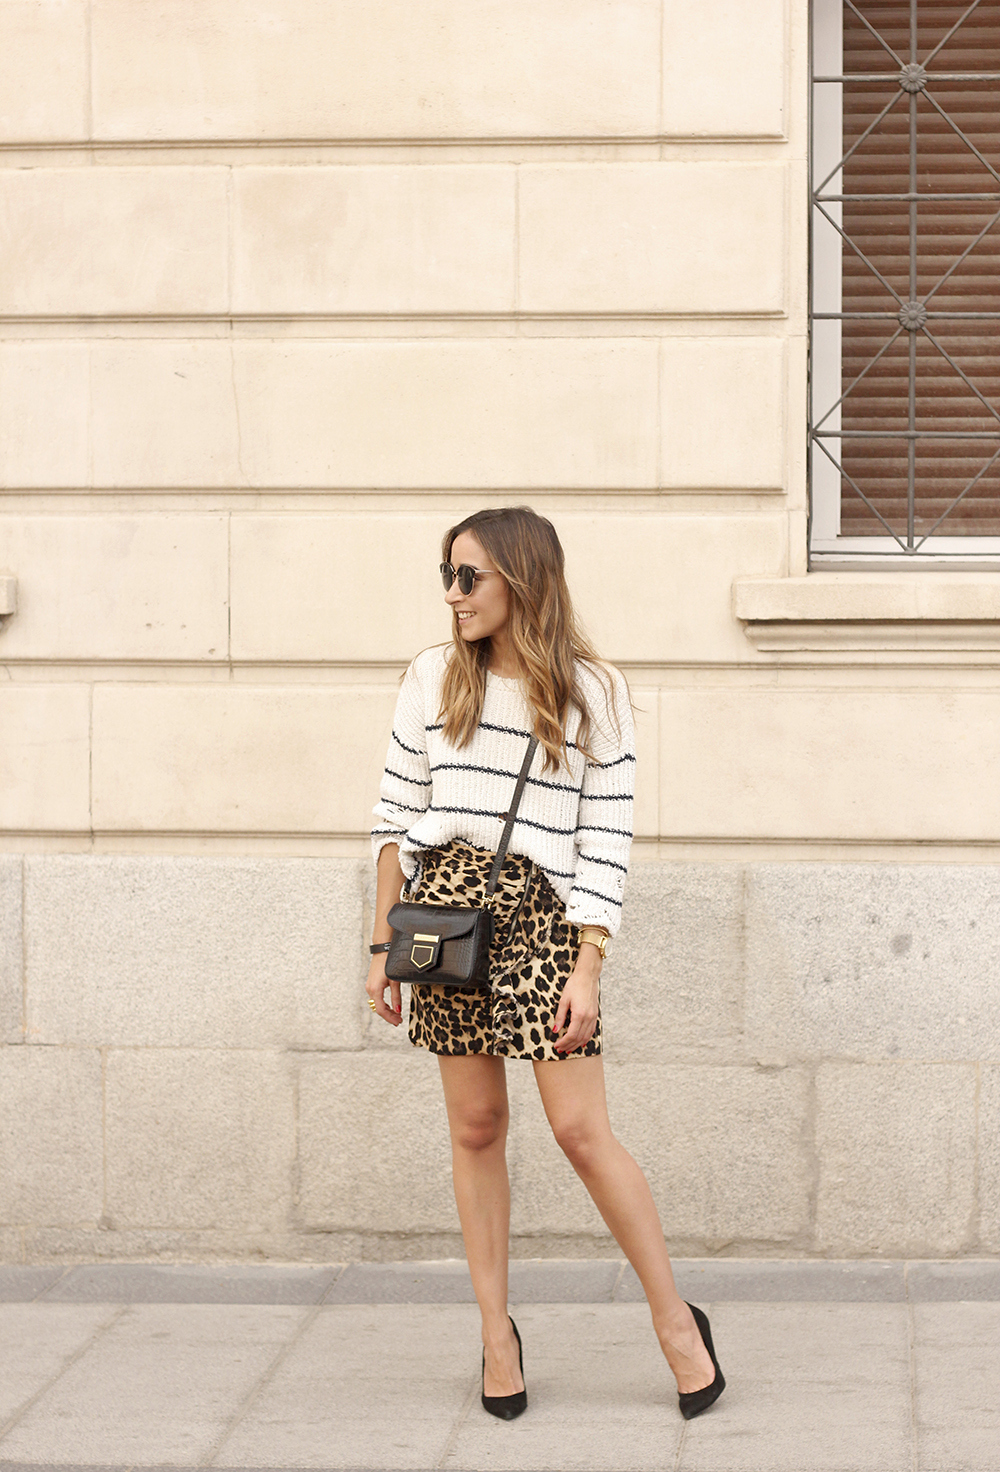 leopard printed skirt striped sweater givenchy bag outfit fashion style trend06